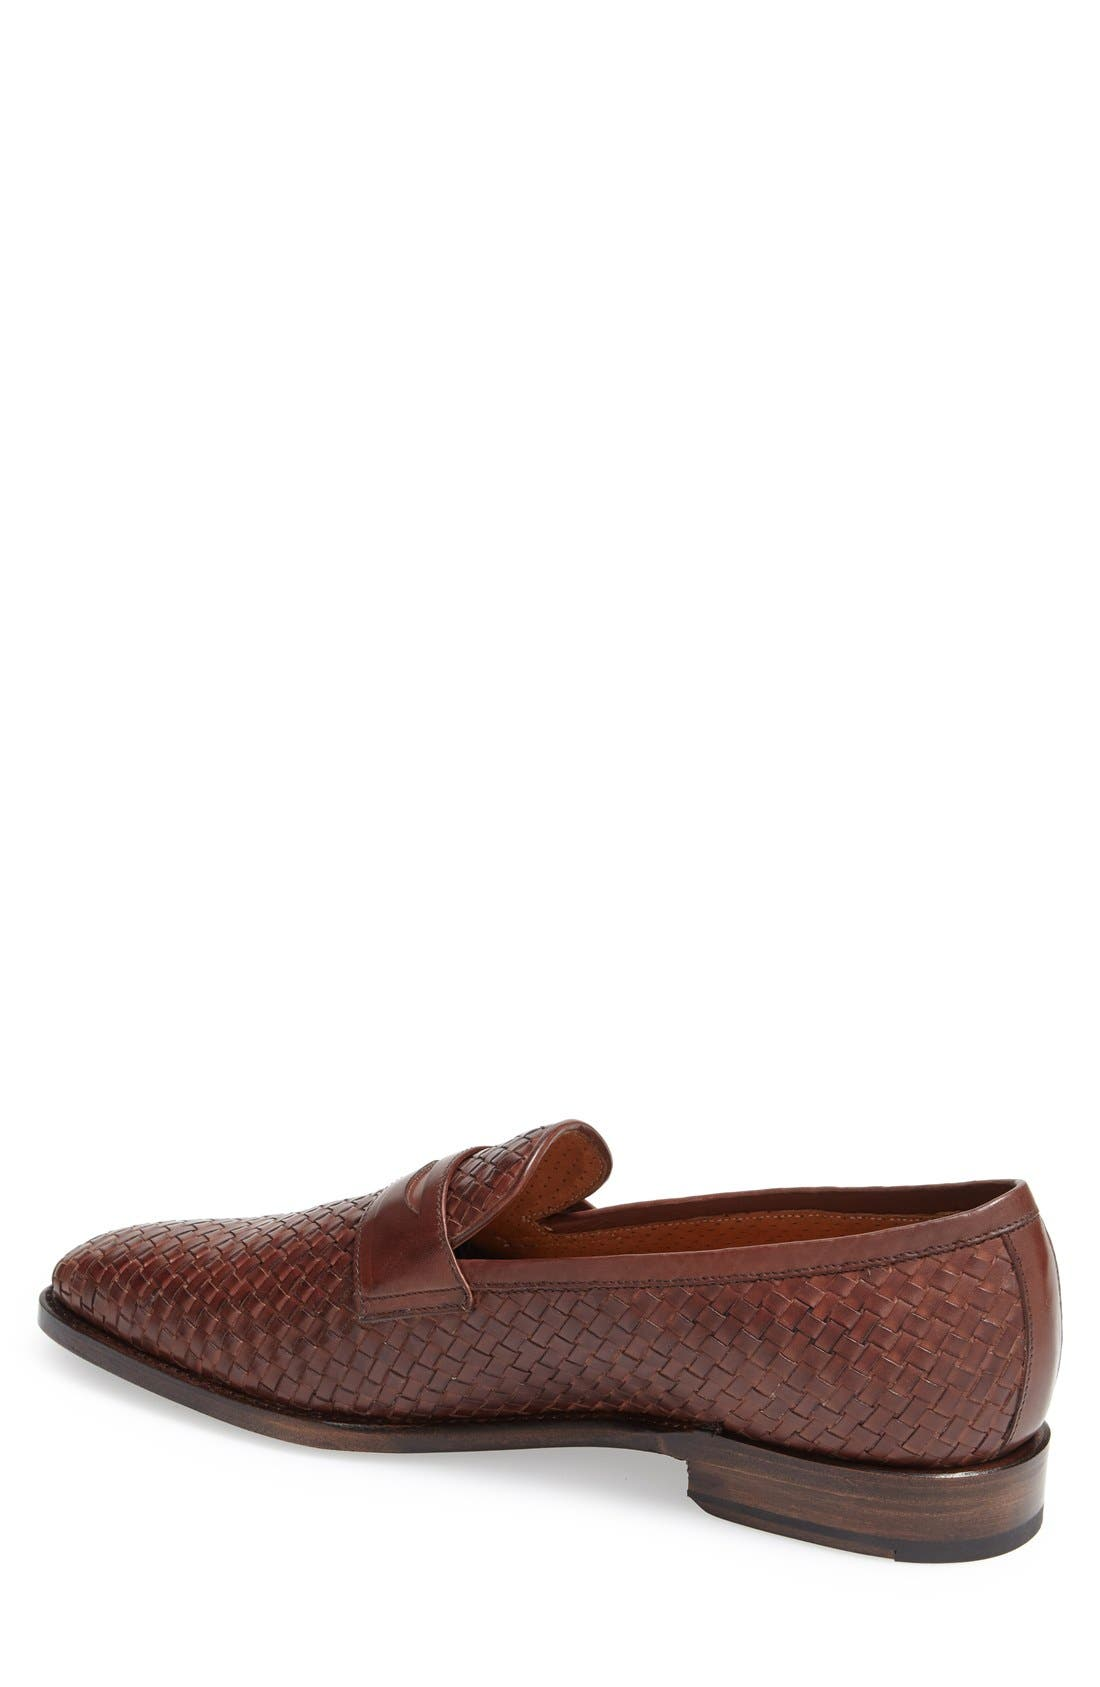 Boots 'Saratoga' Penny Loafer,                             Alternate thumbnail 2, color,                             Brown